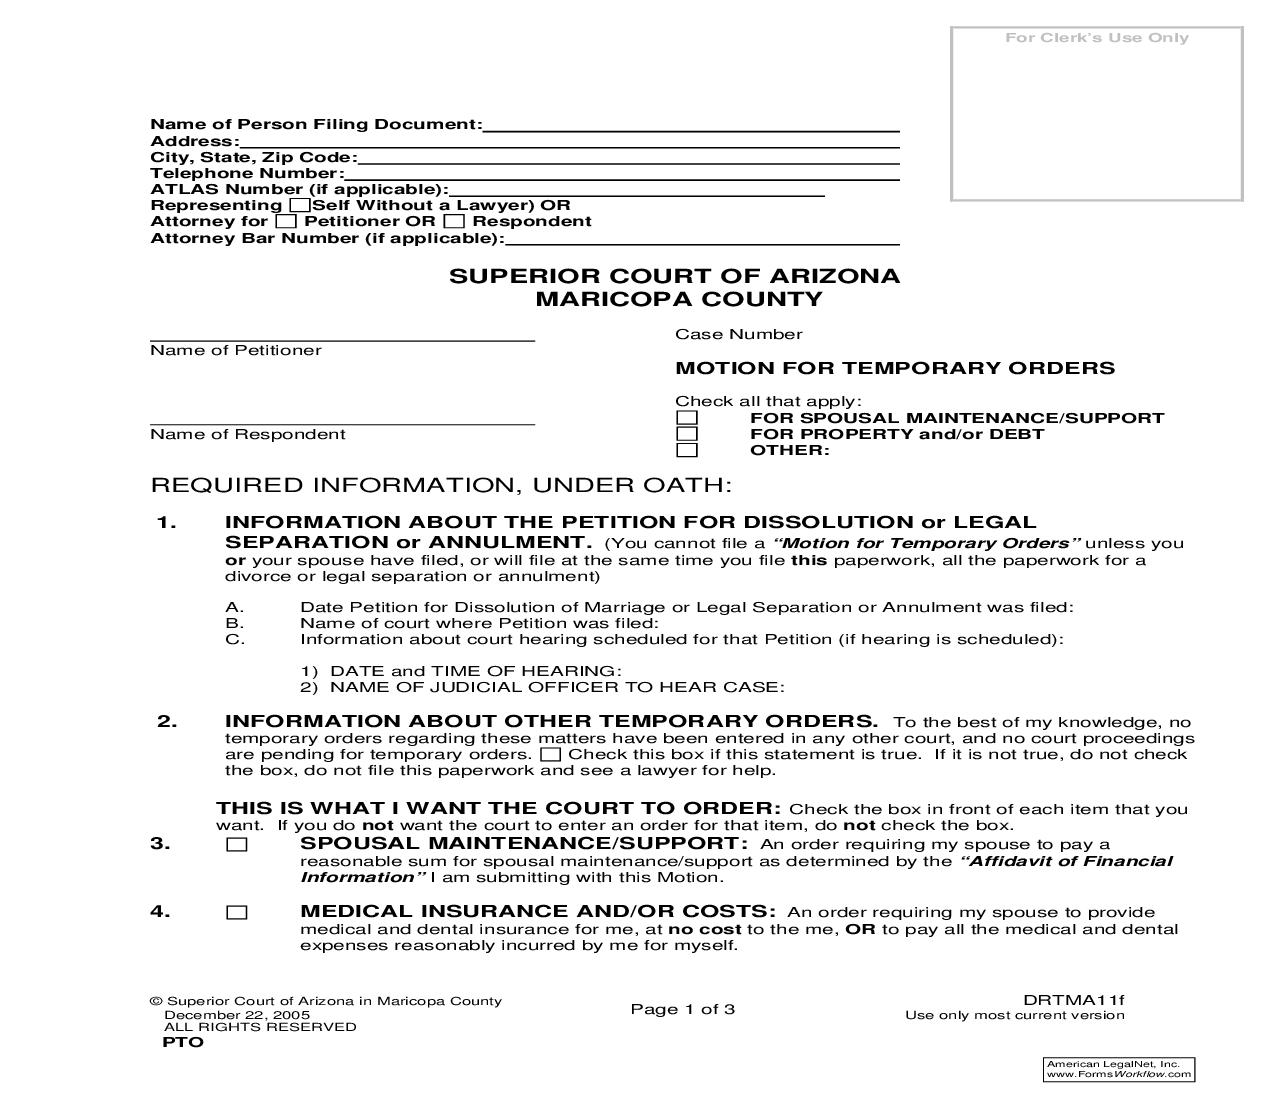 Motion For Temporary Orders {DRTMA11f} | Pdf Fpdf Doc Docx | Arizona